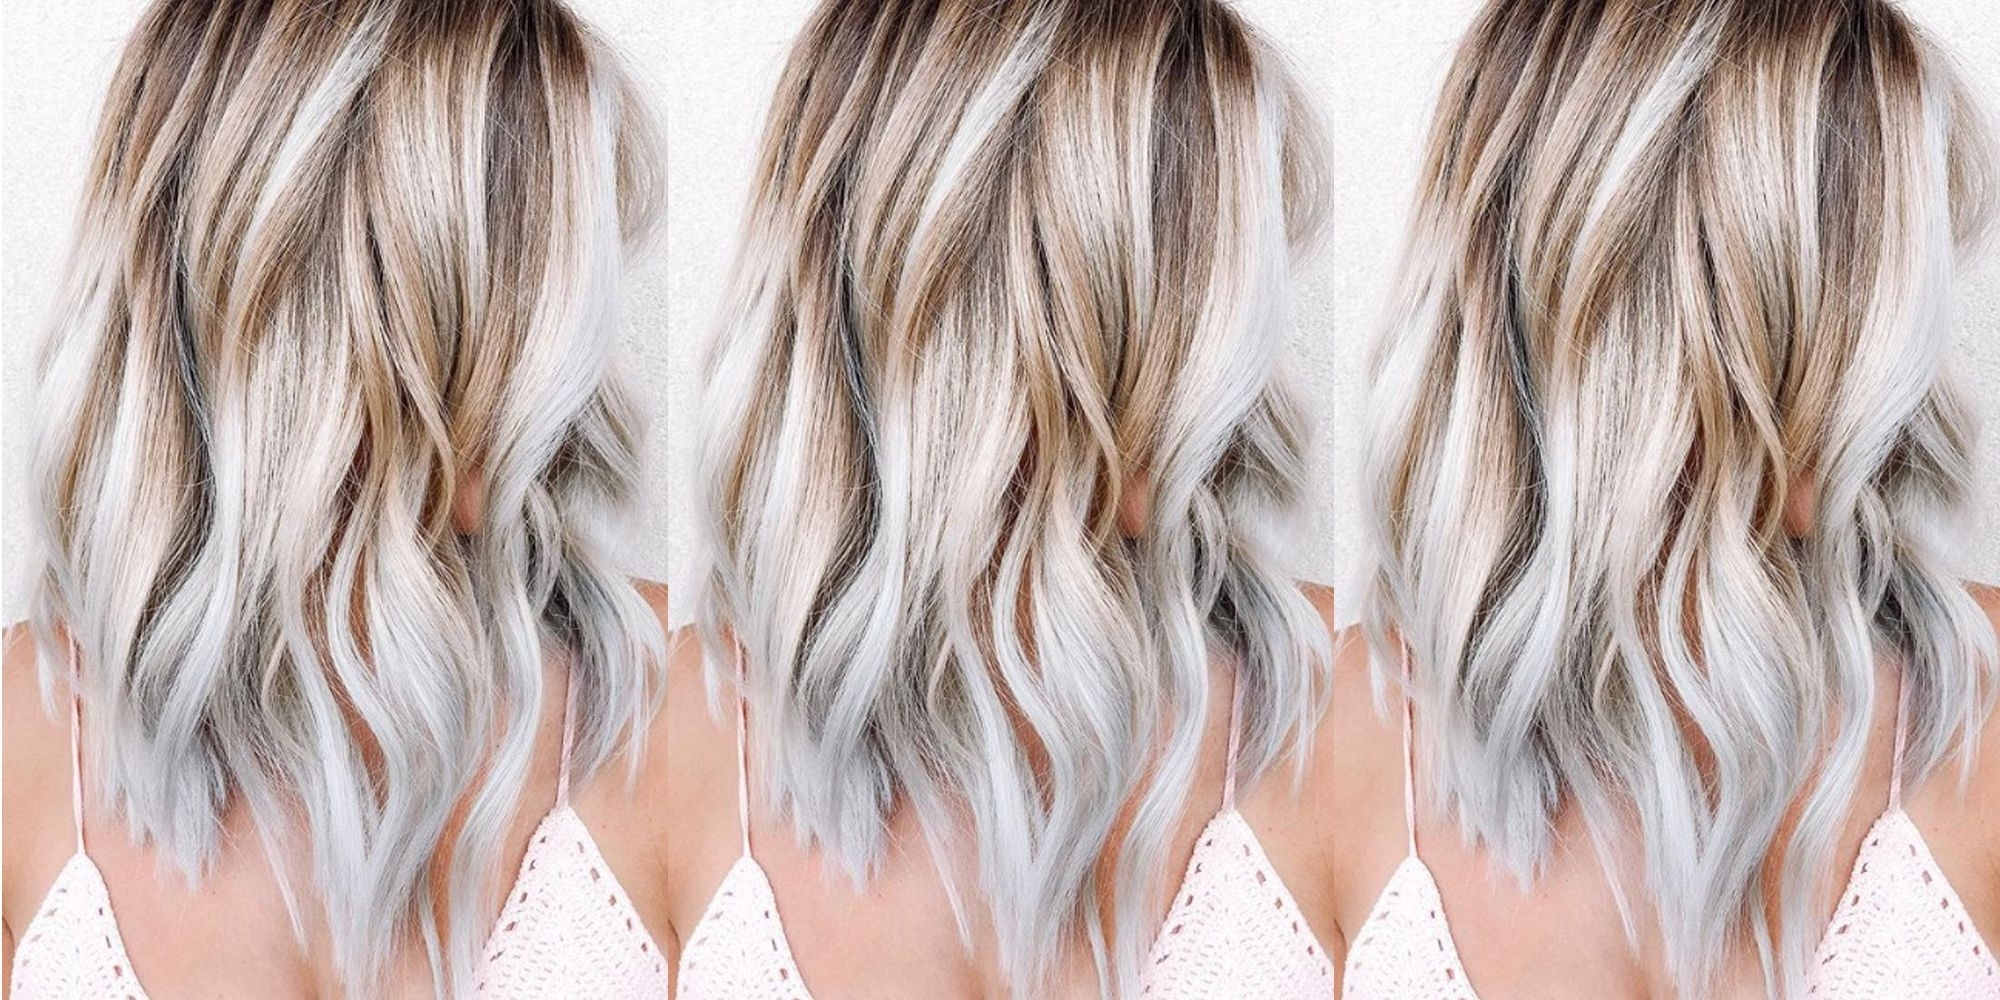 7 Blonde Hair Trends For Summer 2018 – New Ways To Try Blonde Hair Inside Well Known White Blonde Hairstyles For Brown Base (View 10 of 20)